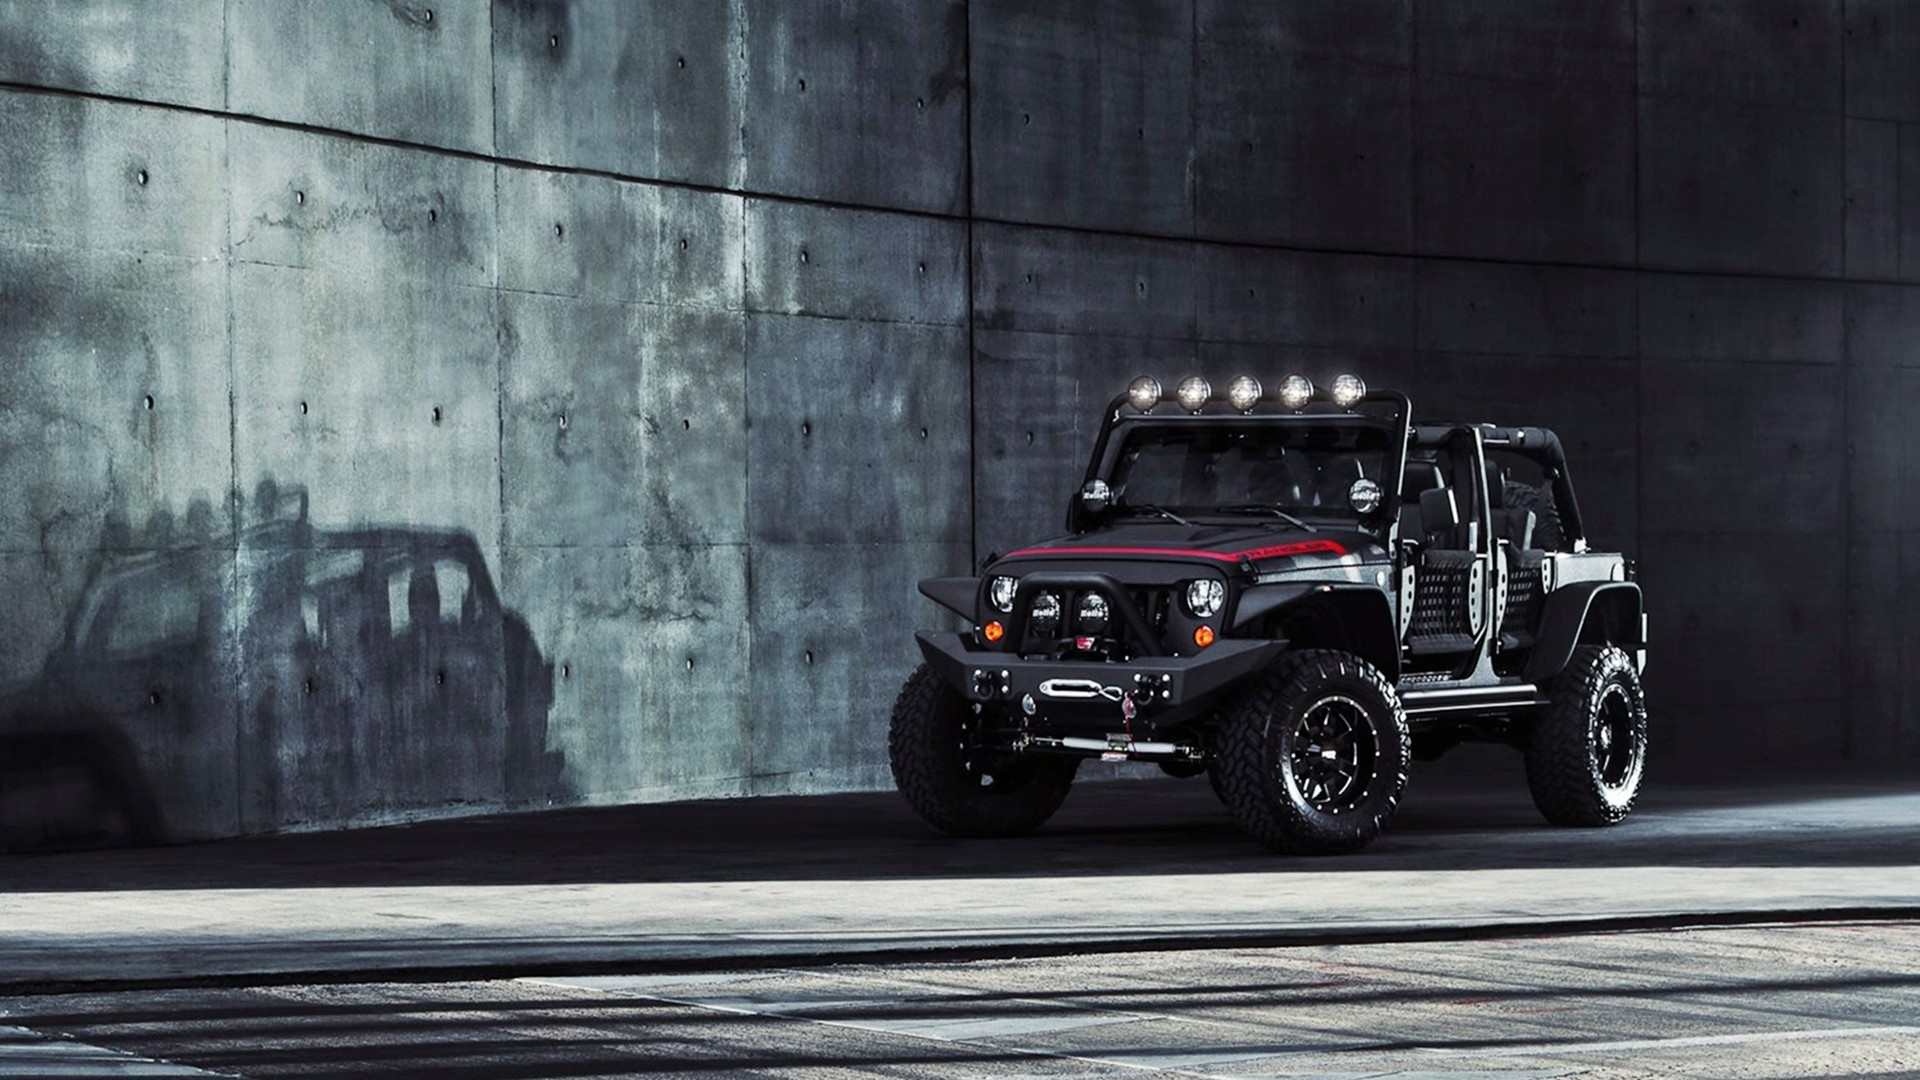 Muscle Jeep Exclusive HD Wallpapers 1538 1920x1080